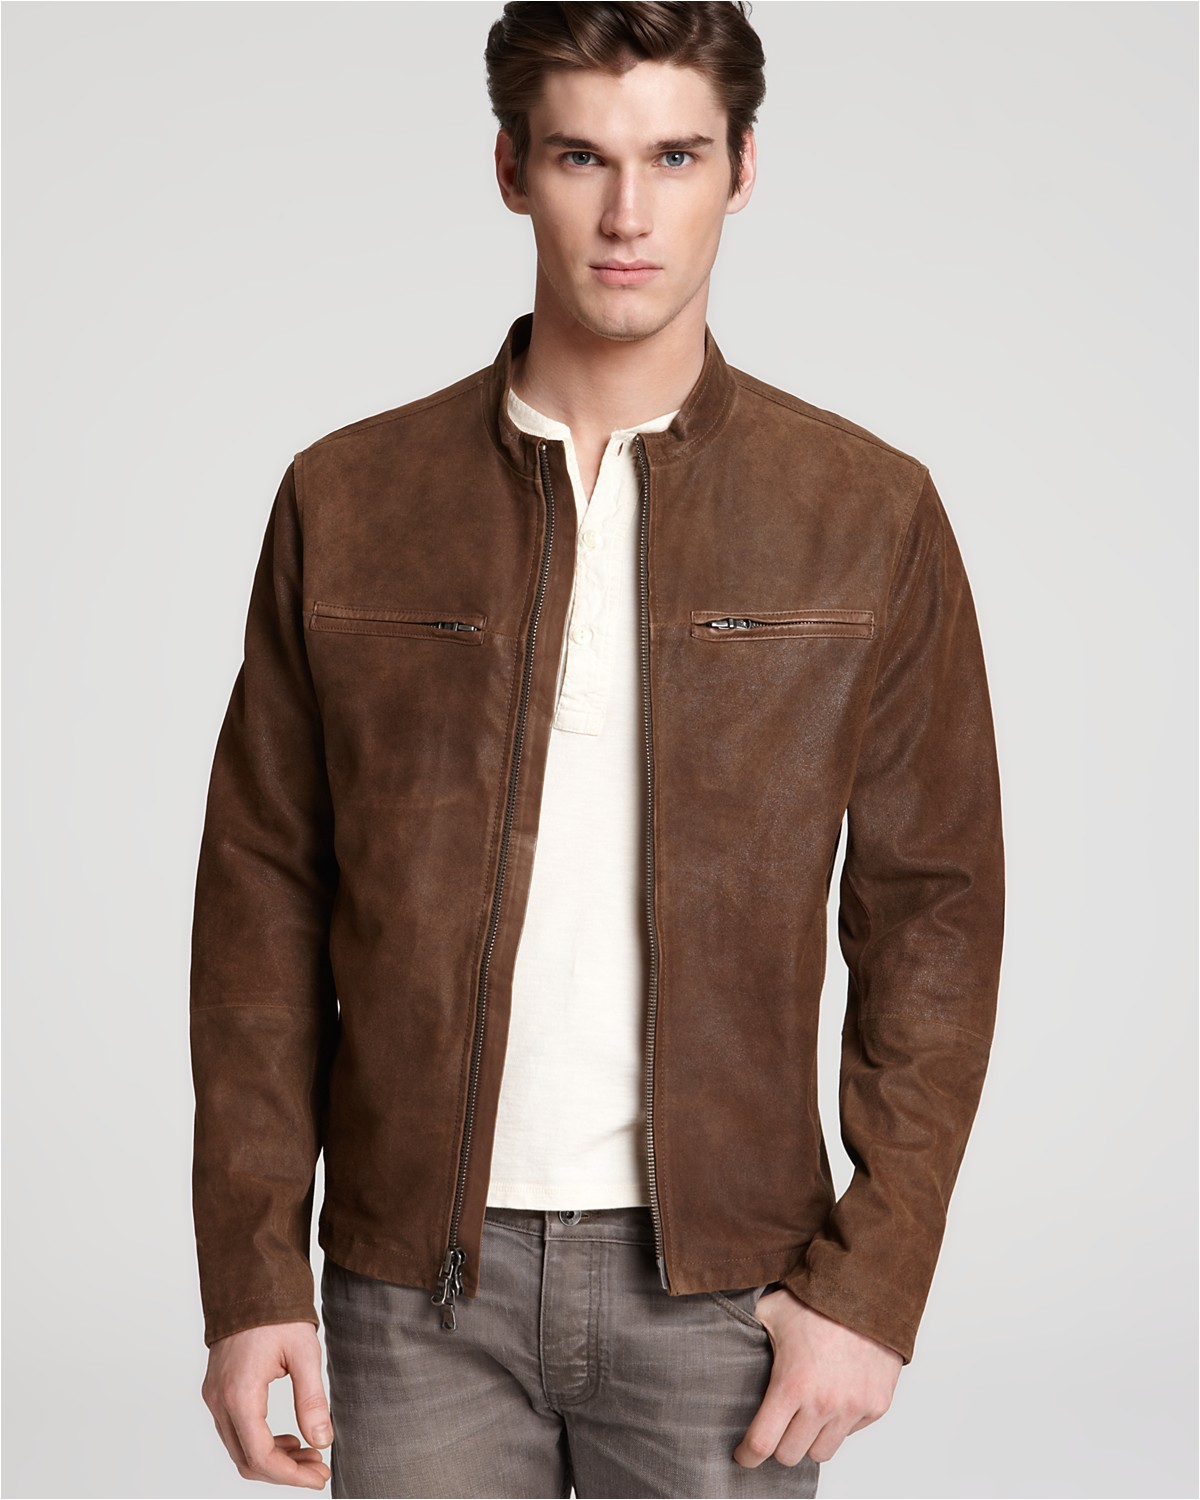 Best Type Of Leather for Jackets 4 Types Of Leather Jackets Commonly Available Nova Fashions